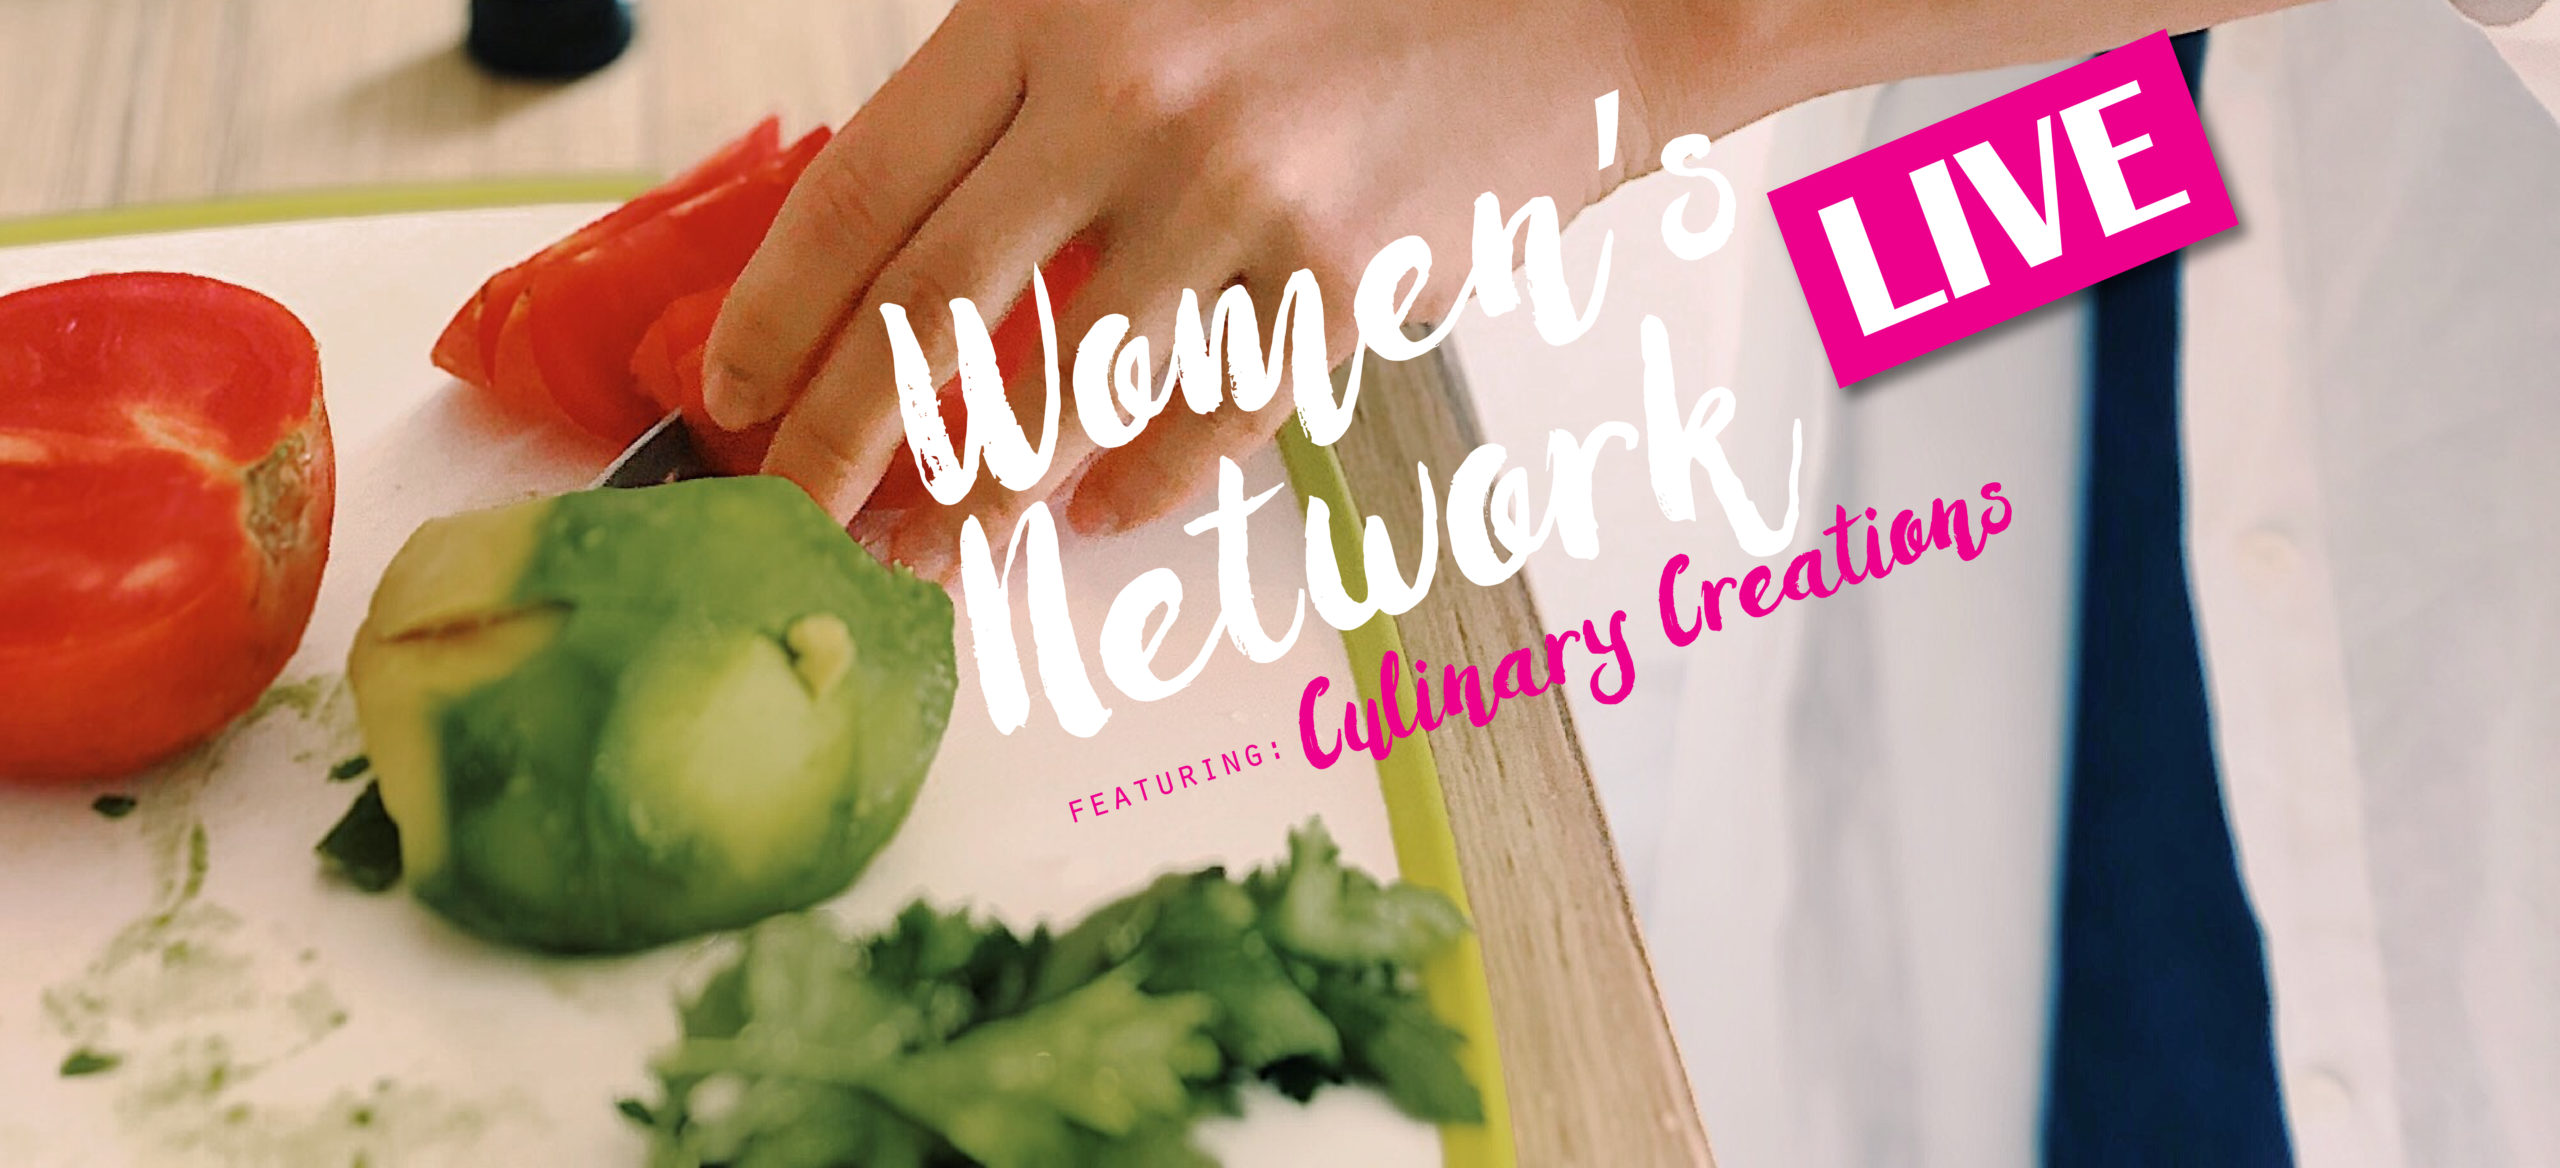 Women's Network LIVE: Featuring Culinary Creations